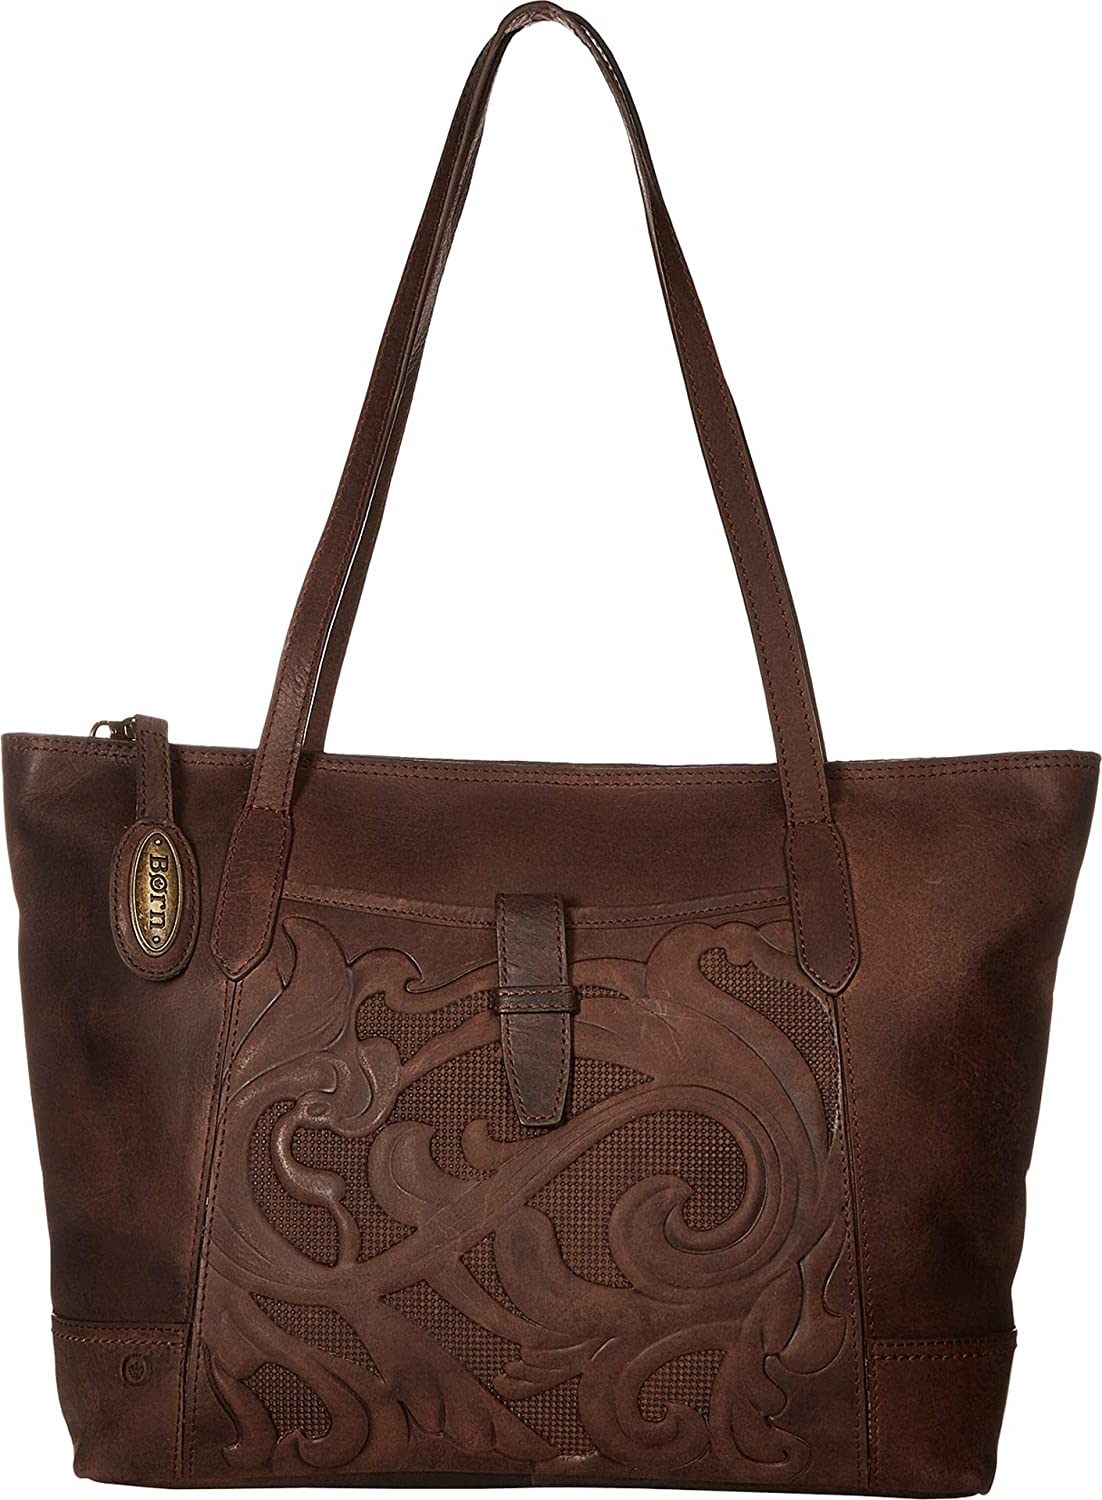 Born Womens Gordon Tote Chocolate One Size